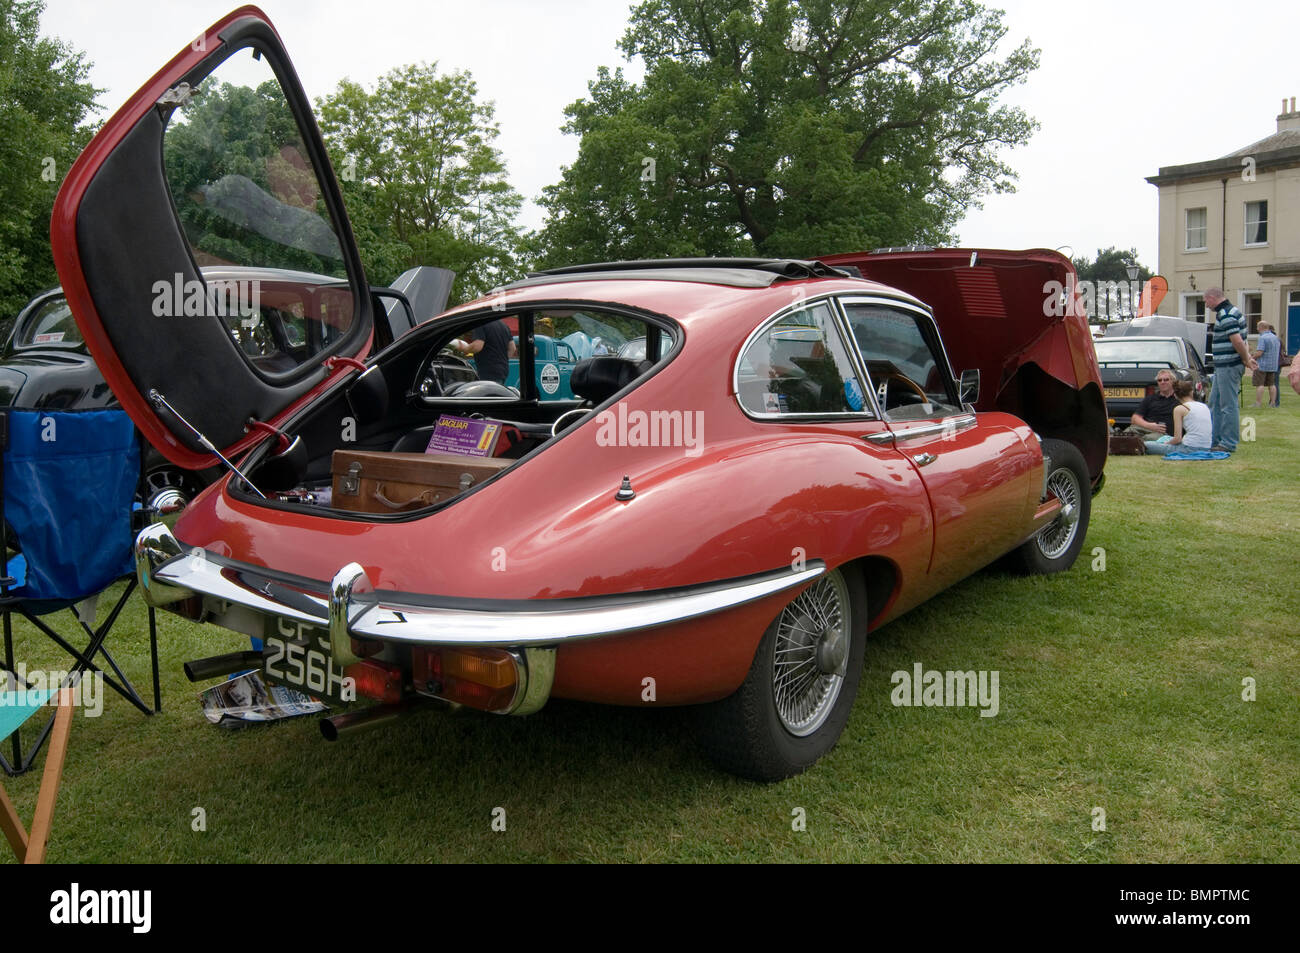 jaguar e type coupe sports car jag hatchback - Stock Image